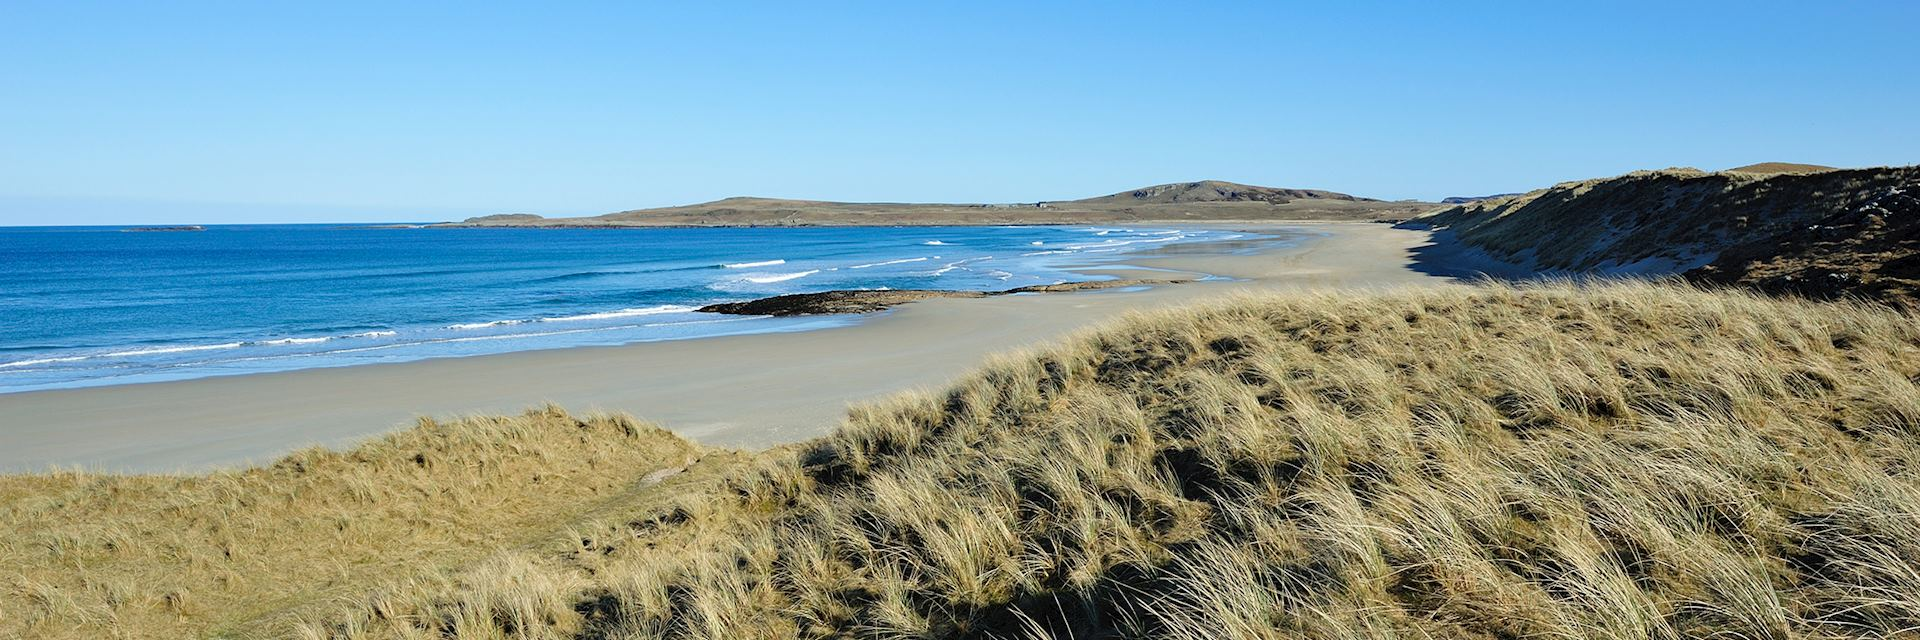 Machir Bay, Isle Of Islay